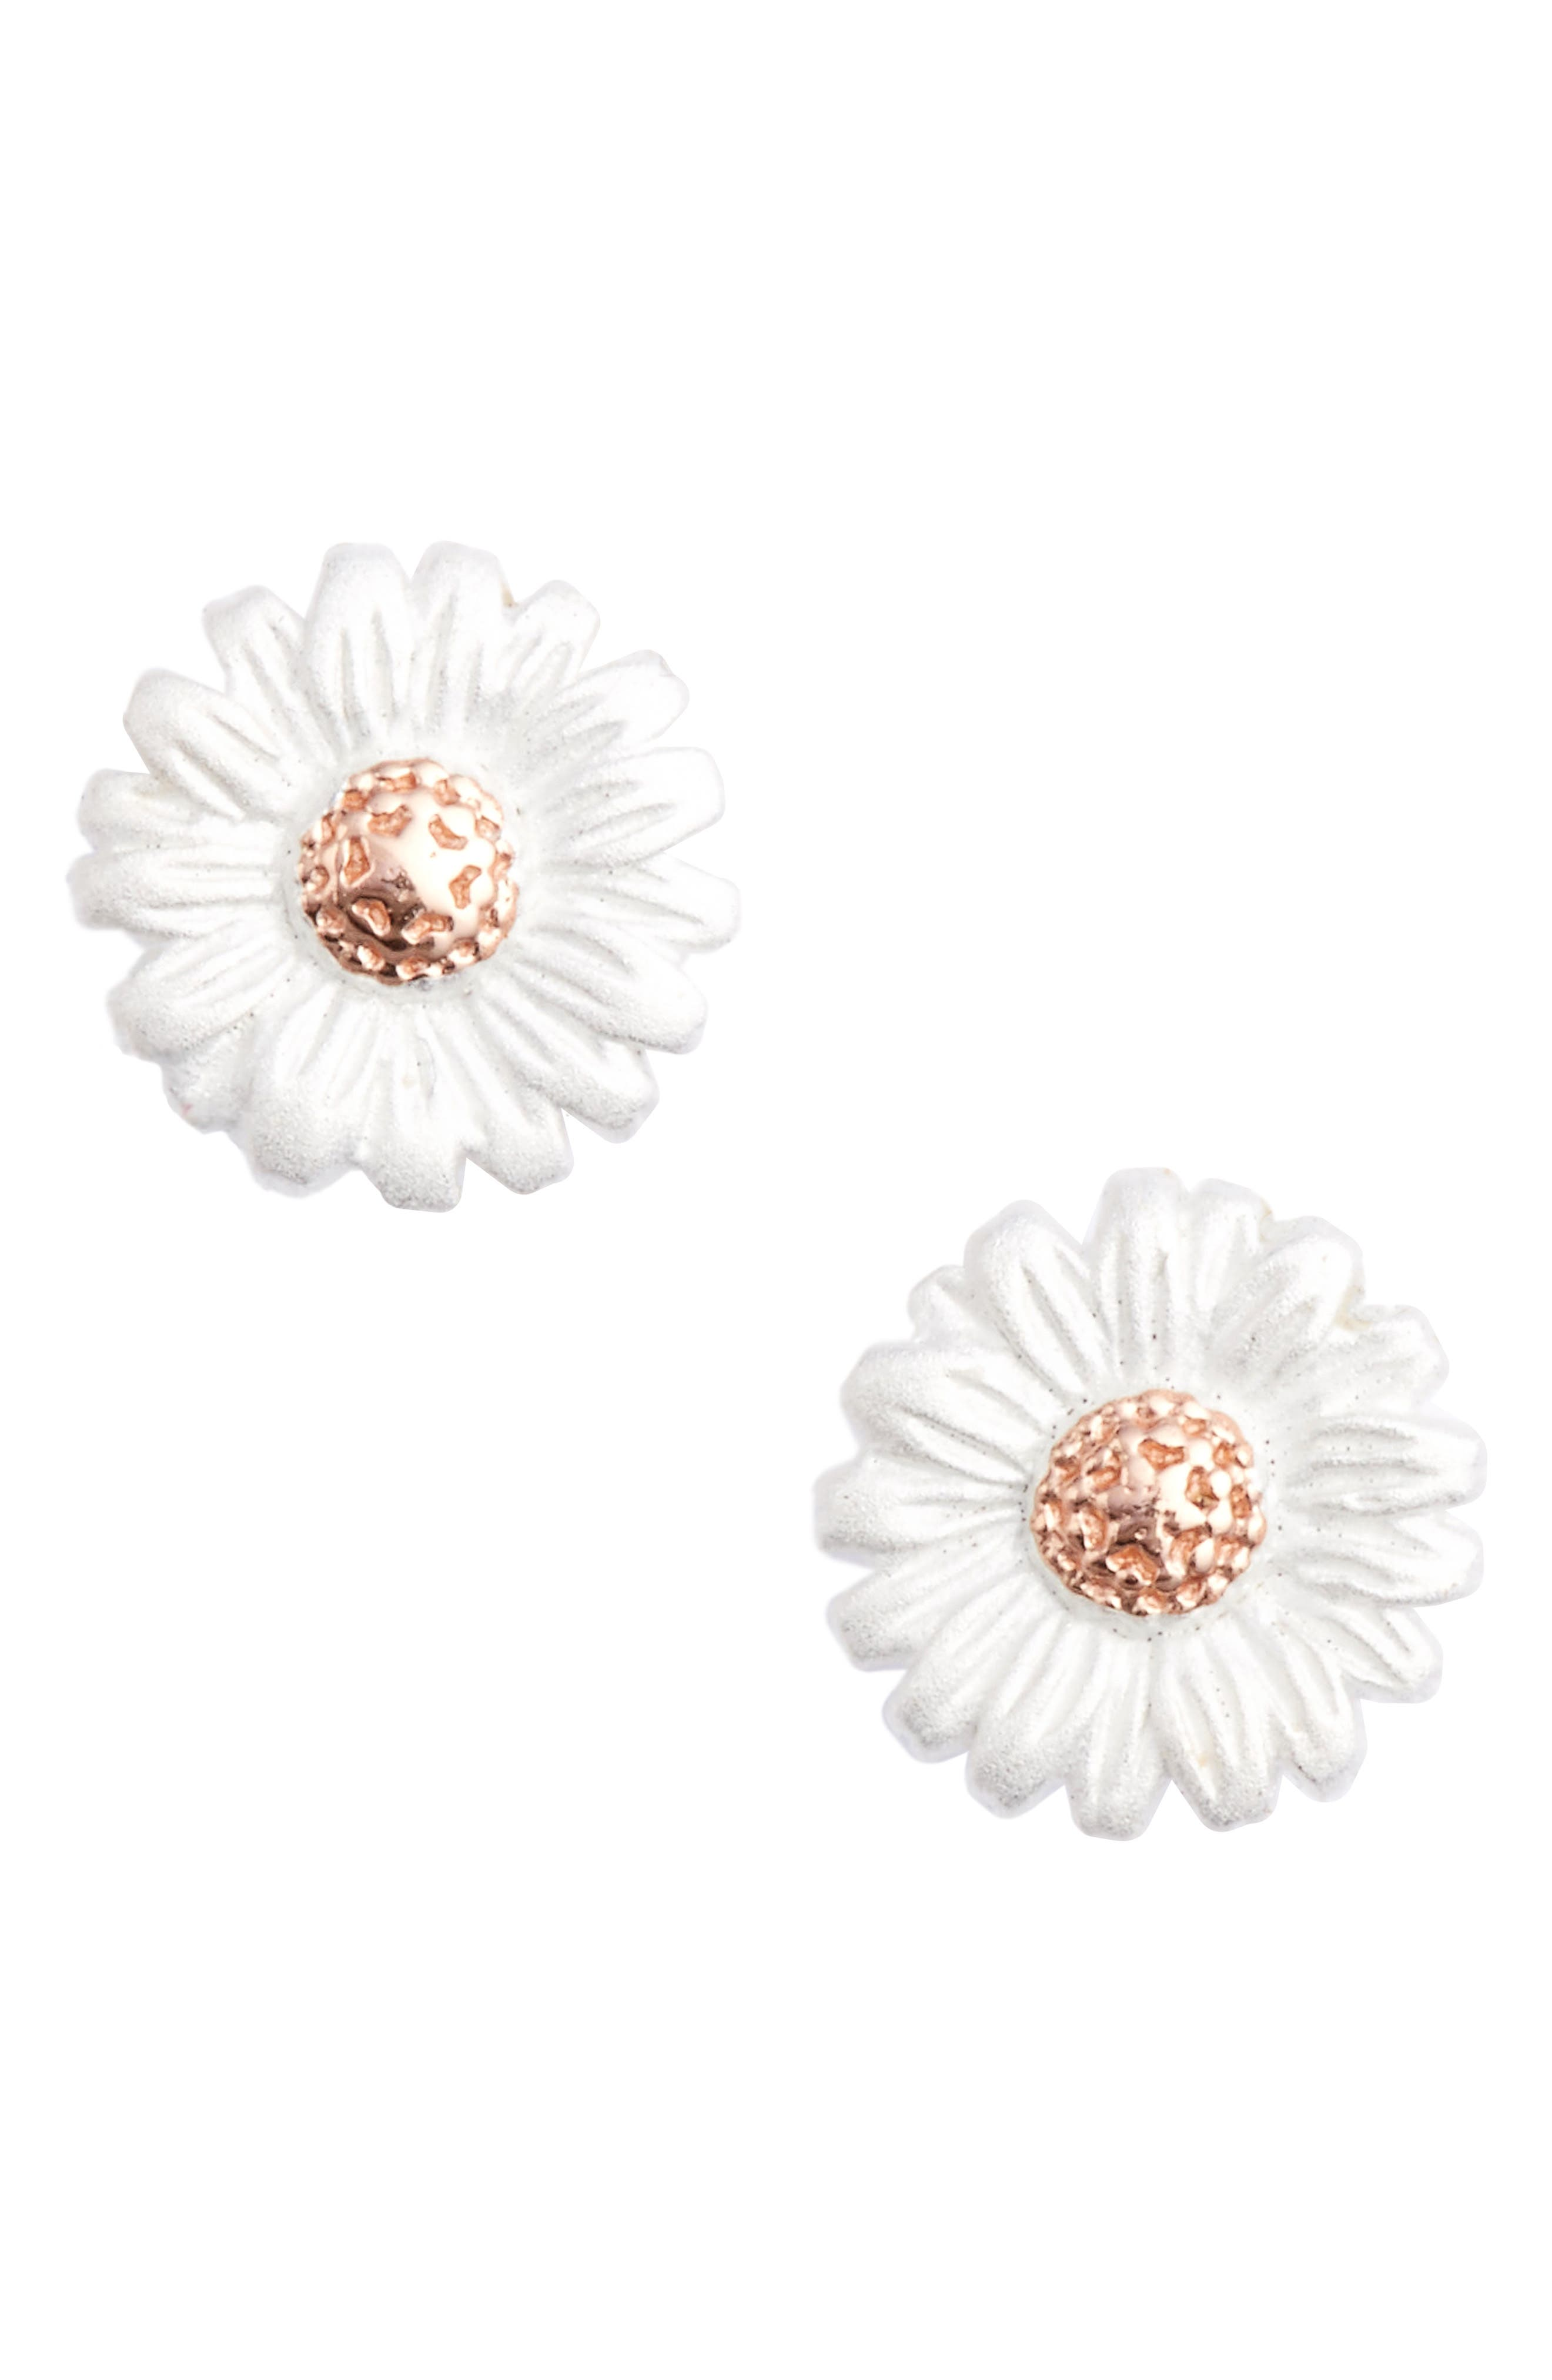 Daisy Stud Earrings,                         Main,                         color, SILVER/ ROSE GOLD